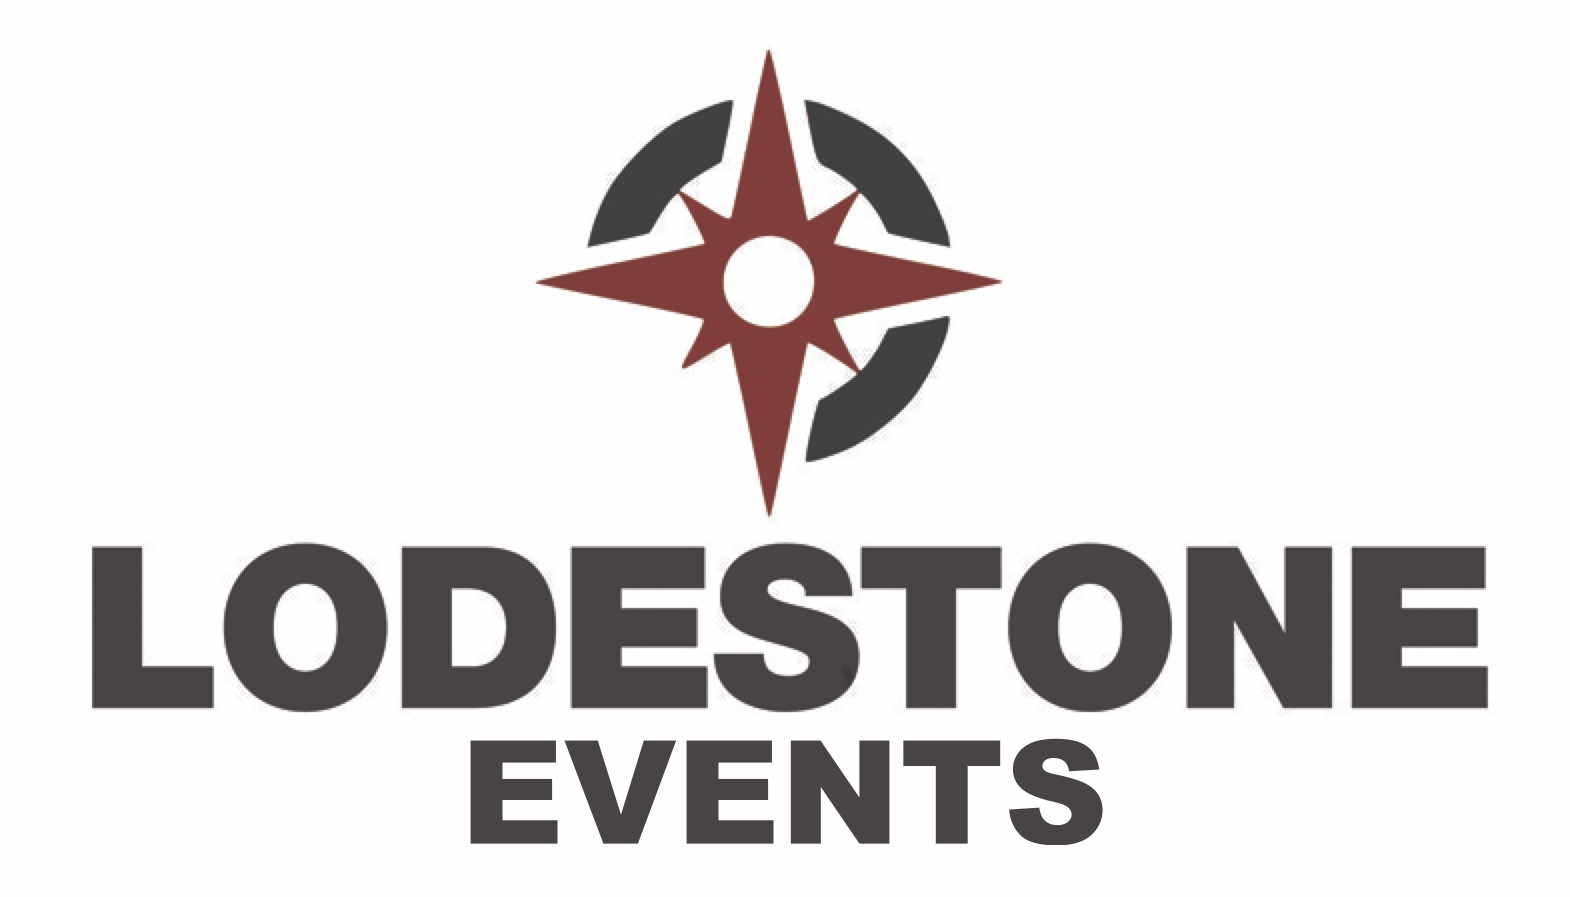 LodestoneEvents_Logo_Final.jpg